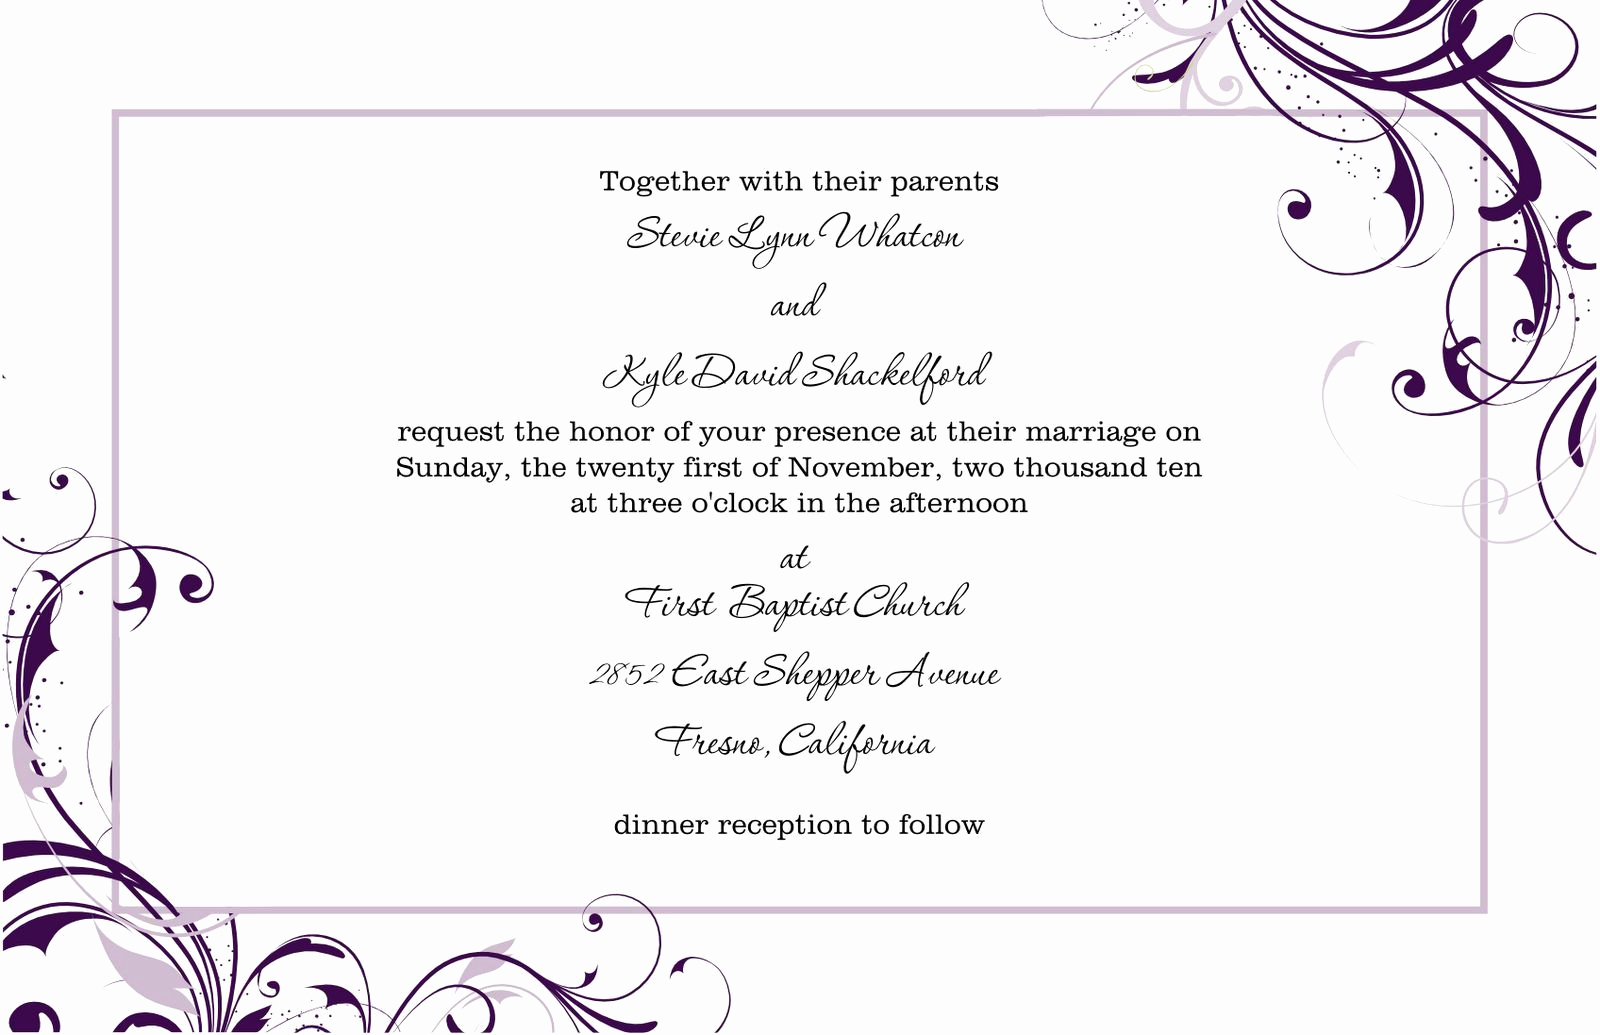 Free Blank Invitation Templates Lovely Free Blank Wedding Invitation Templates for Microsoft Word